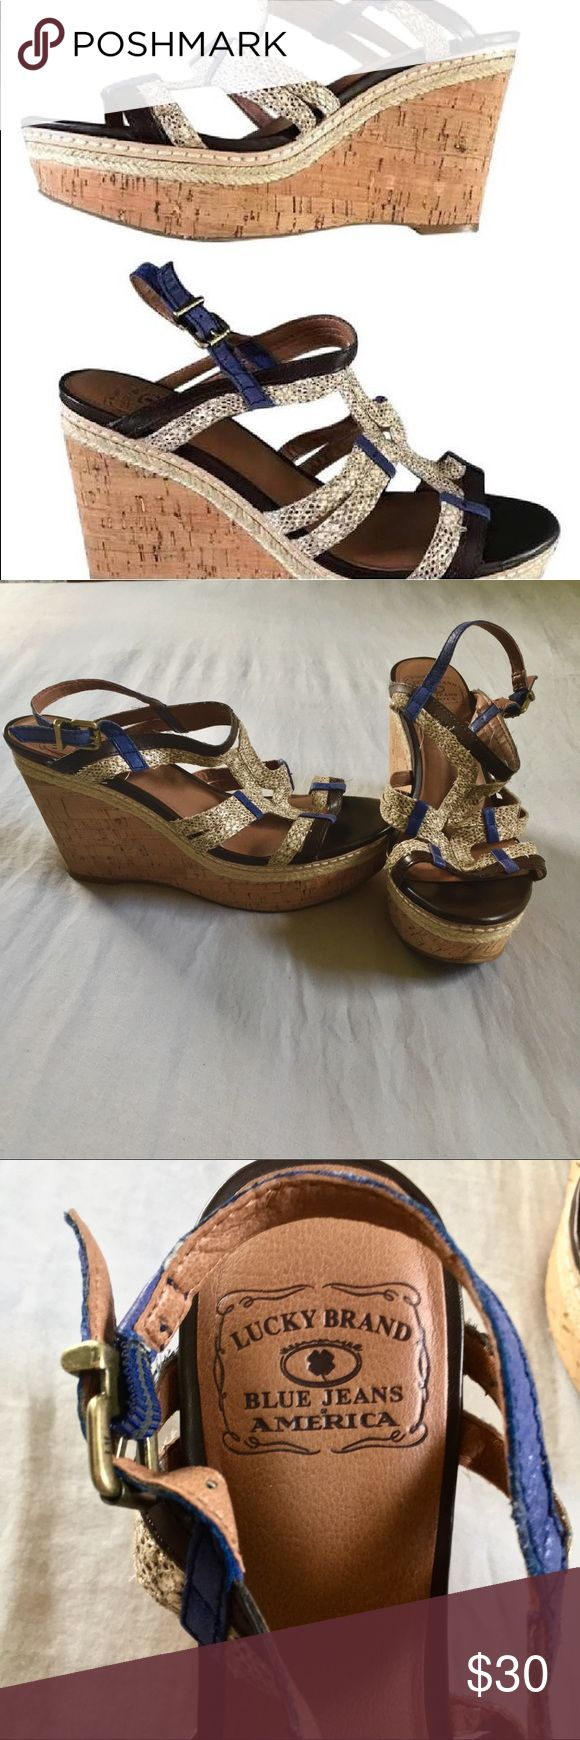 Lucky Brand Snakeskin wedge sandal sz.9 Snakeskin print multi colored wedge from Lucky Brand. Size 9. Platform cork sole makes these super comfortable. Brown, snakeskin, and navy blue coloring. Some sign of wear on the upper, but like new on the soles, 3.5 inch height. Lucky Brand Shoes Wedges